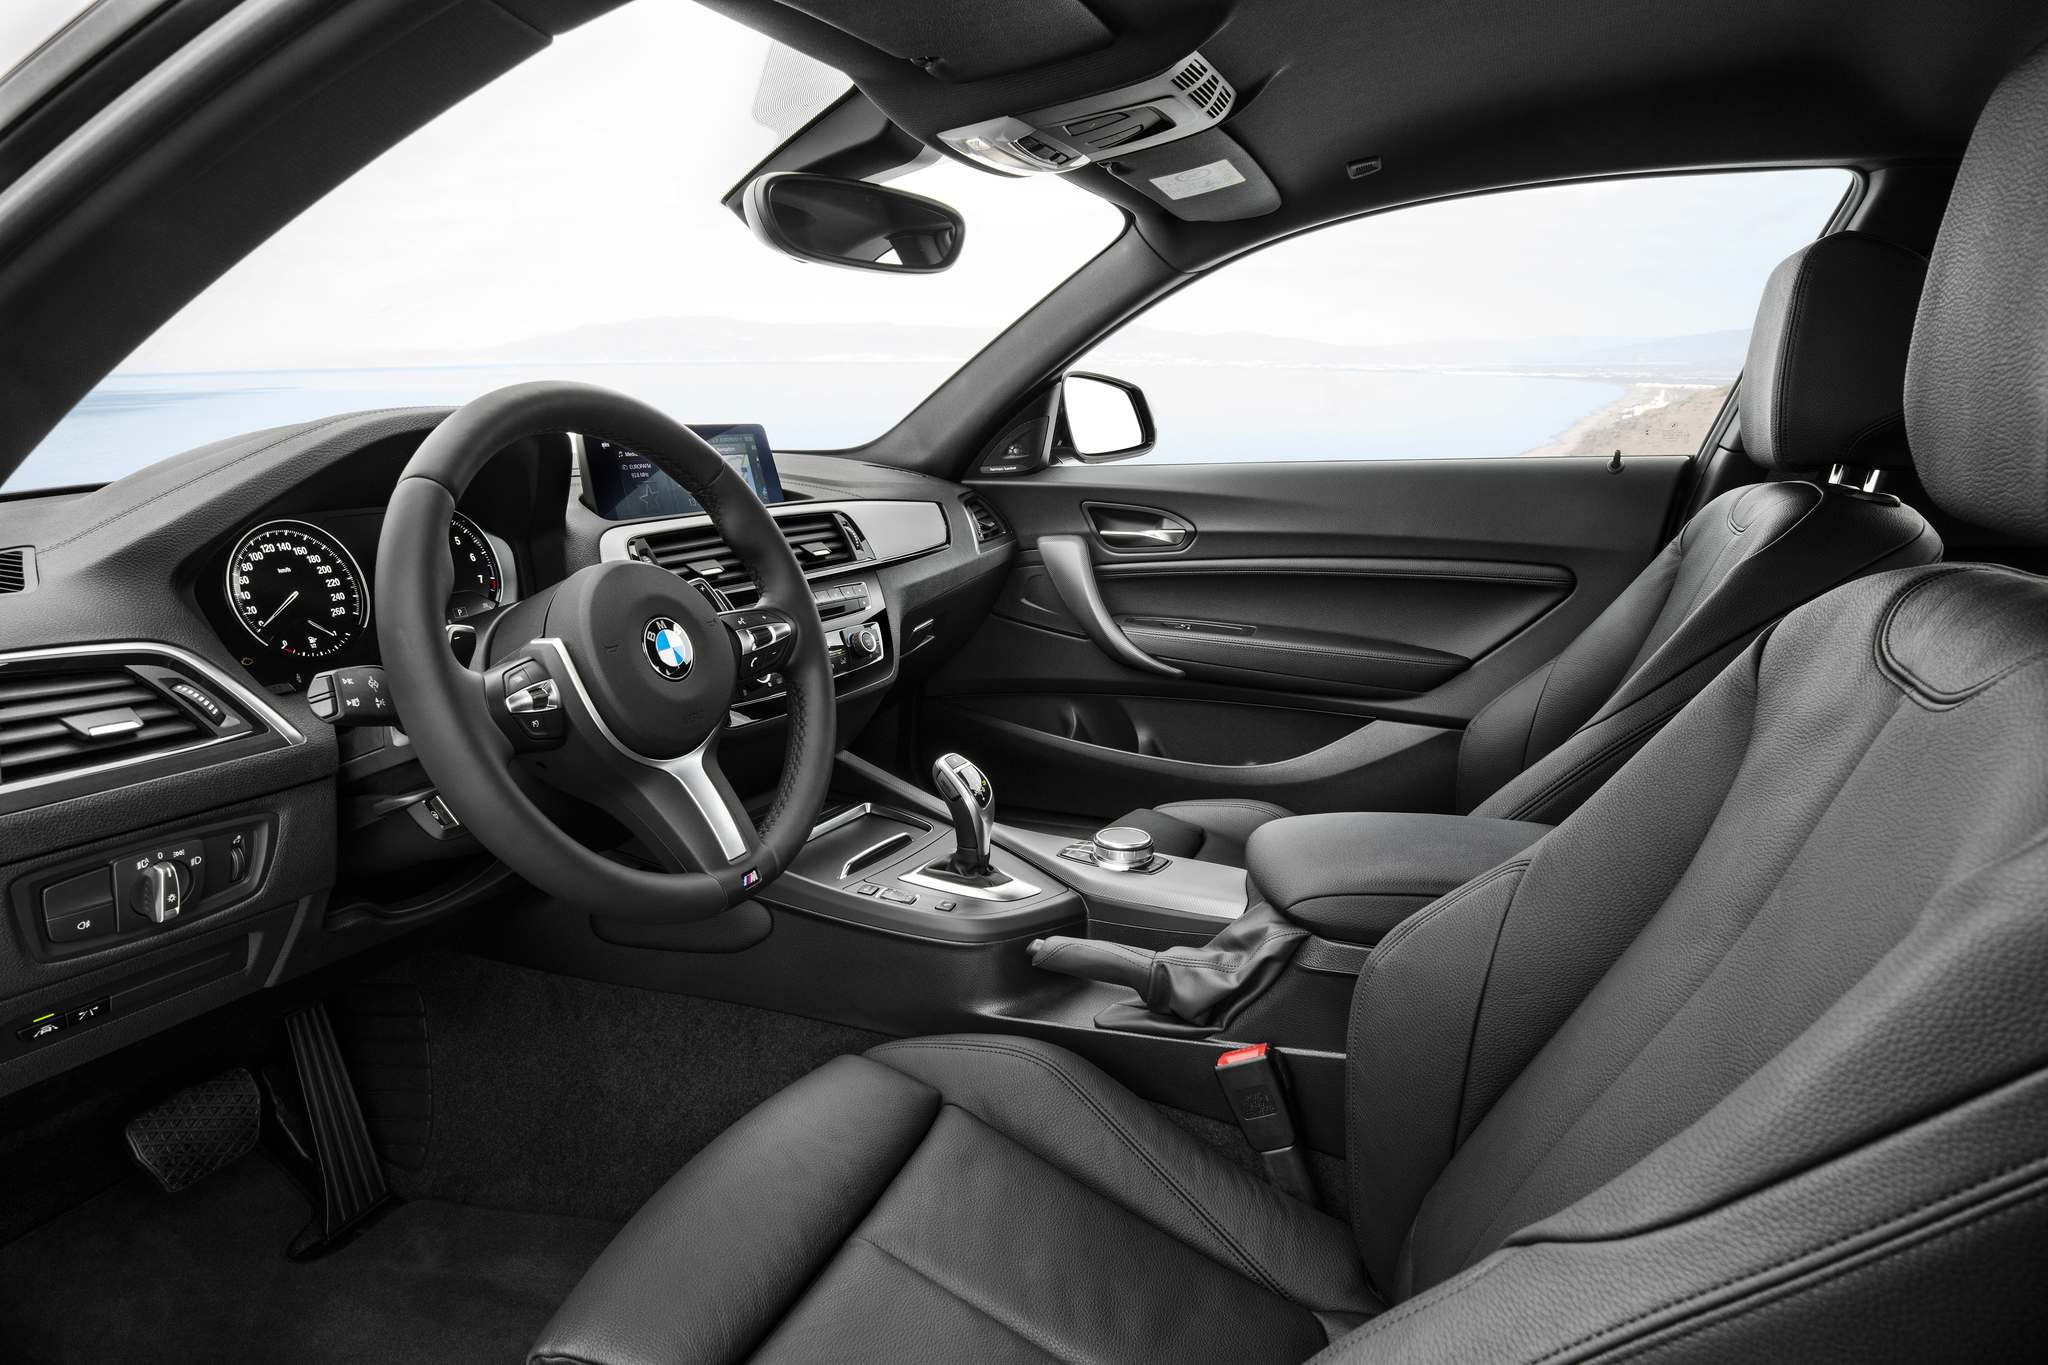 BMWThe enhanced premium package adds a sunroof, navigation, parking sensors and satellite radio.